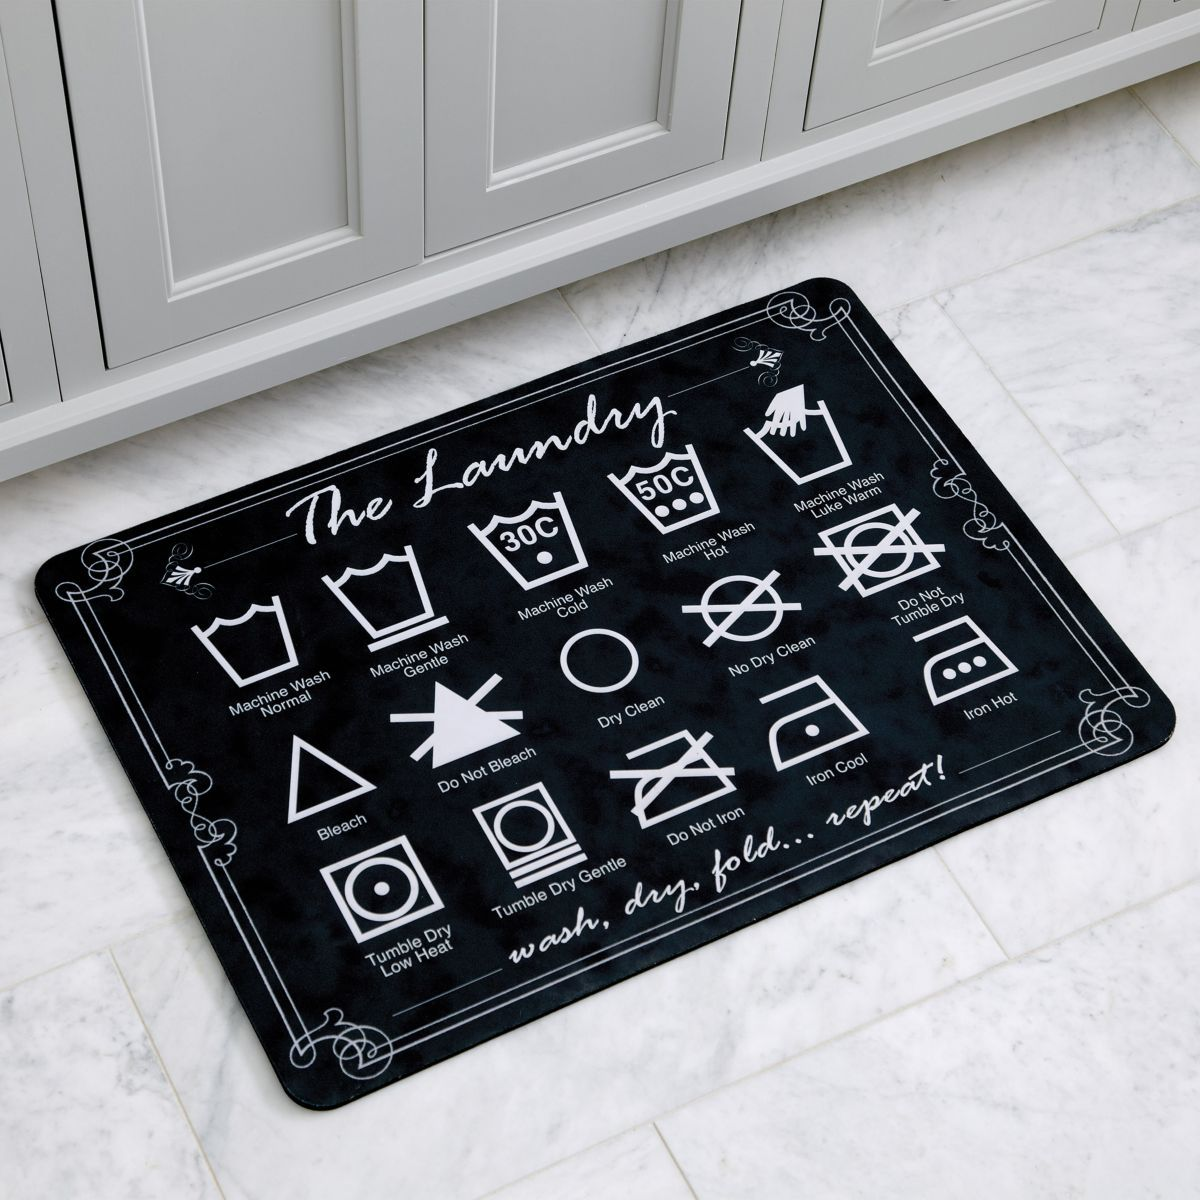 Laundry comfort mat where to buy pinterest laundry this comfy mat speaks the international language of laundry each symbol represents a different laundering instruction to make the everyday chore more fun buycottarizona Images